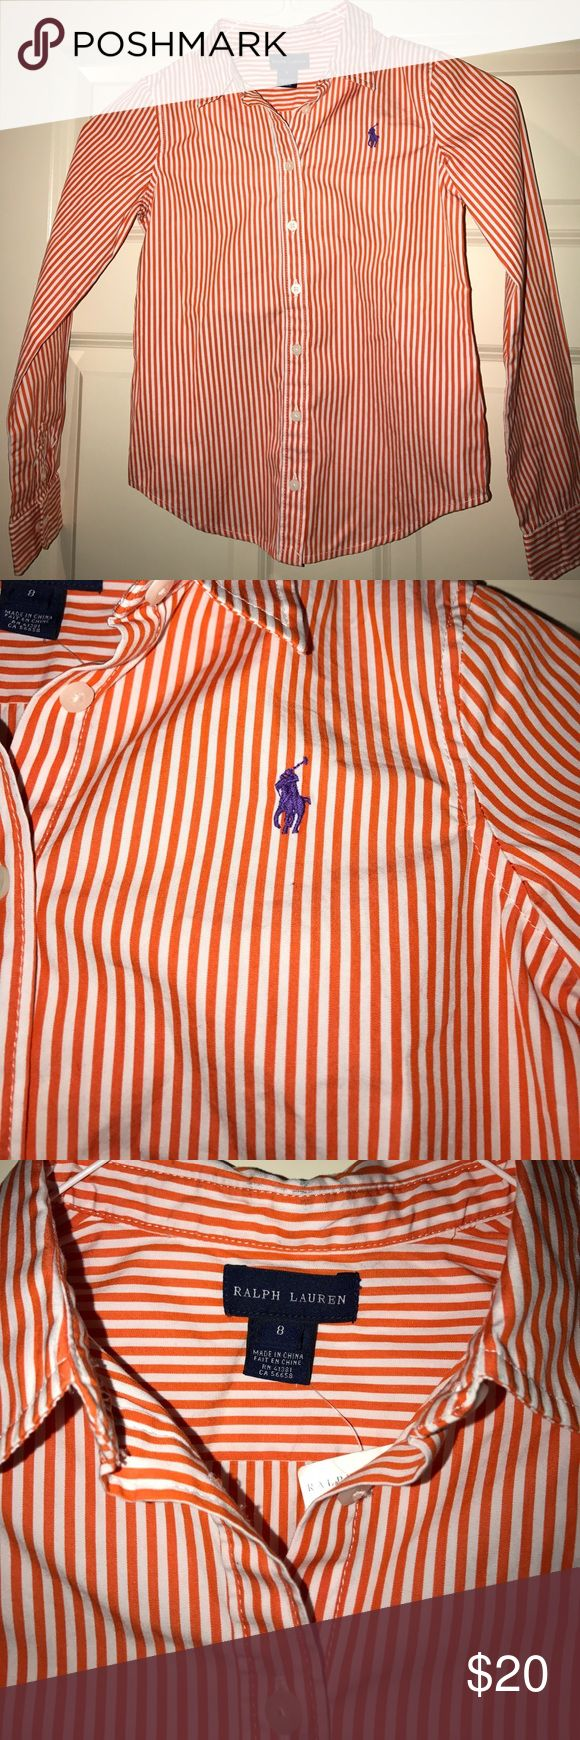 New with Tags Polo Shirt for Kids Never worn. Wrinkles from storage. New condition. Polo by Ralph Lauren Shirts & Tops Button Down Shirts